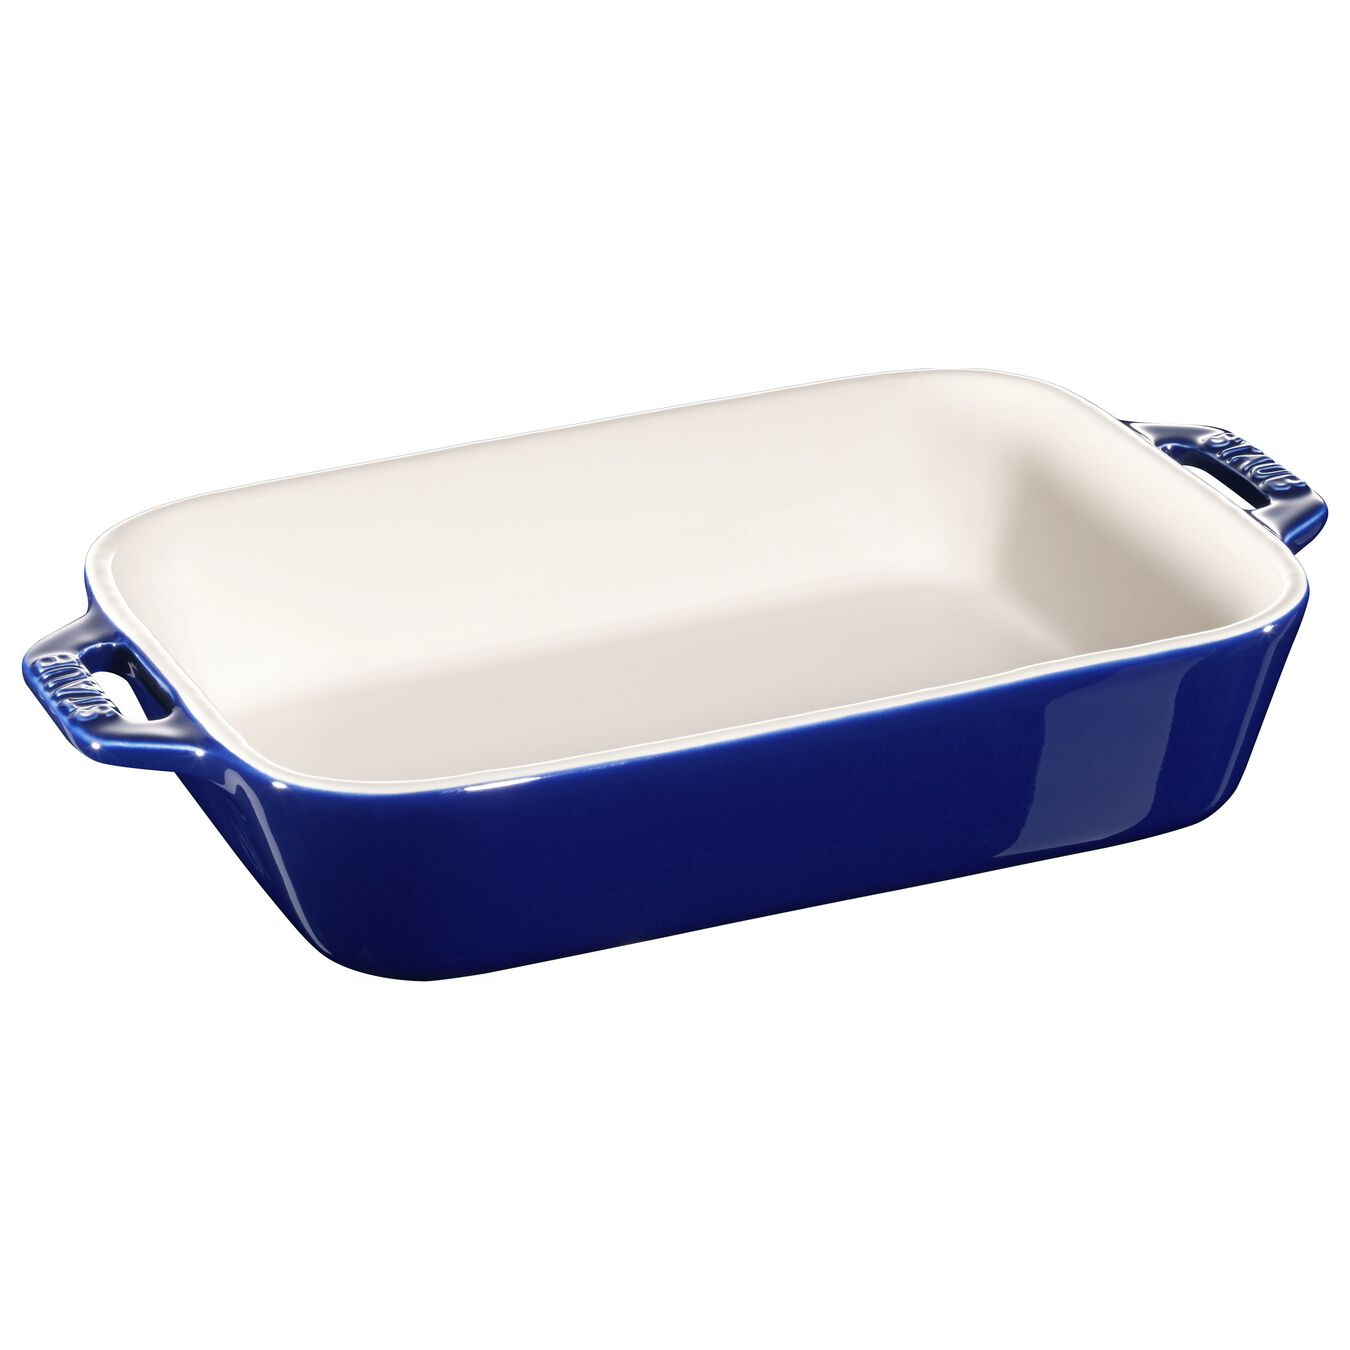 2-pc, Rectangular Baking Dish Set, dark blue,,large 4